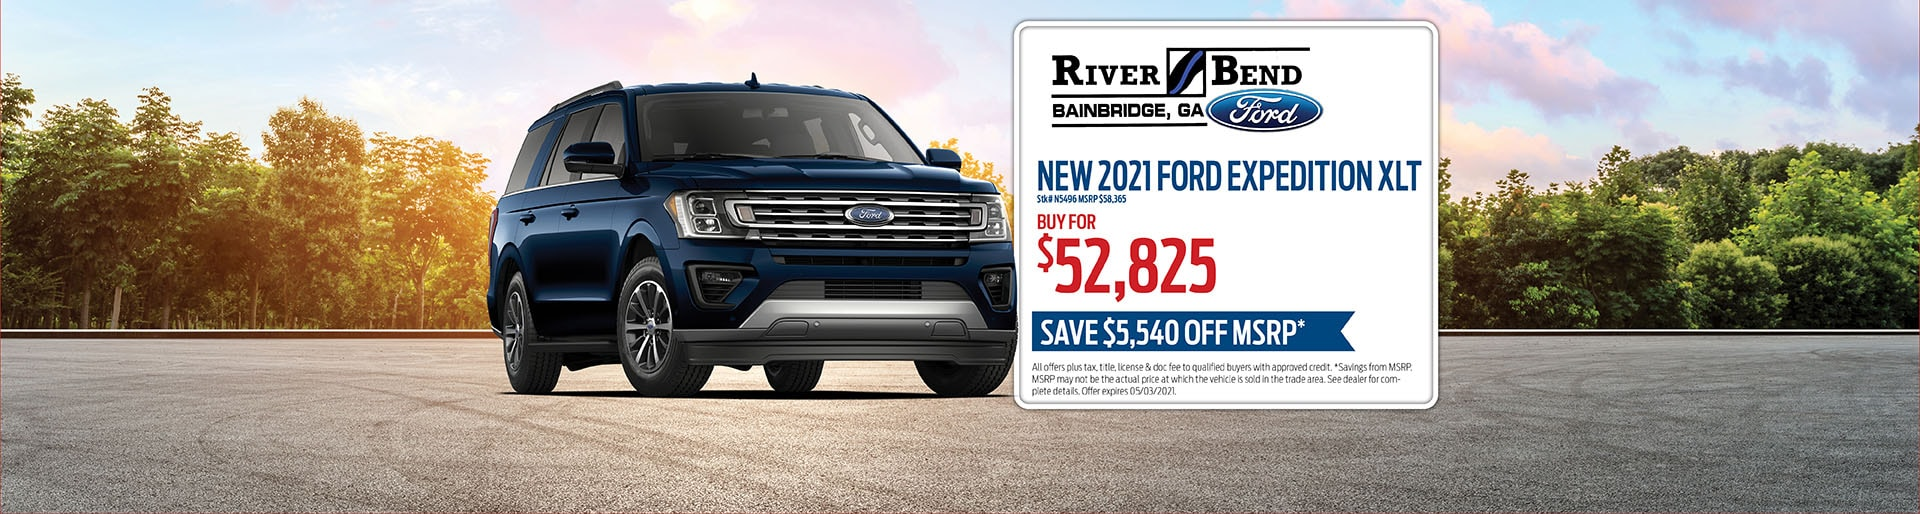 2021 Ford Expedition XLT | RiverBend Ford